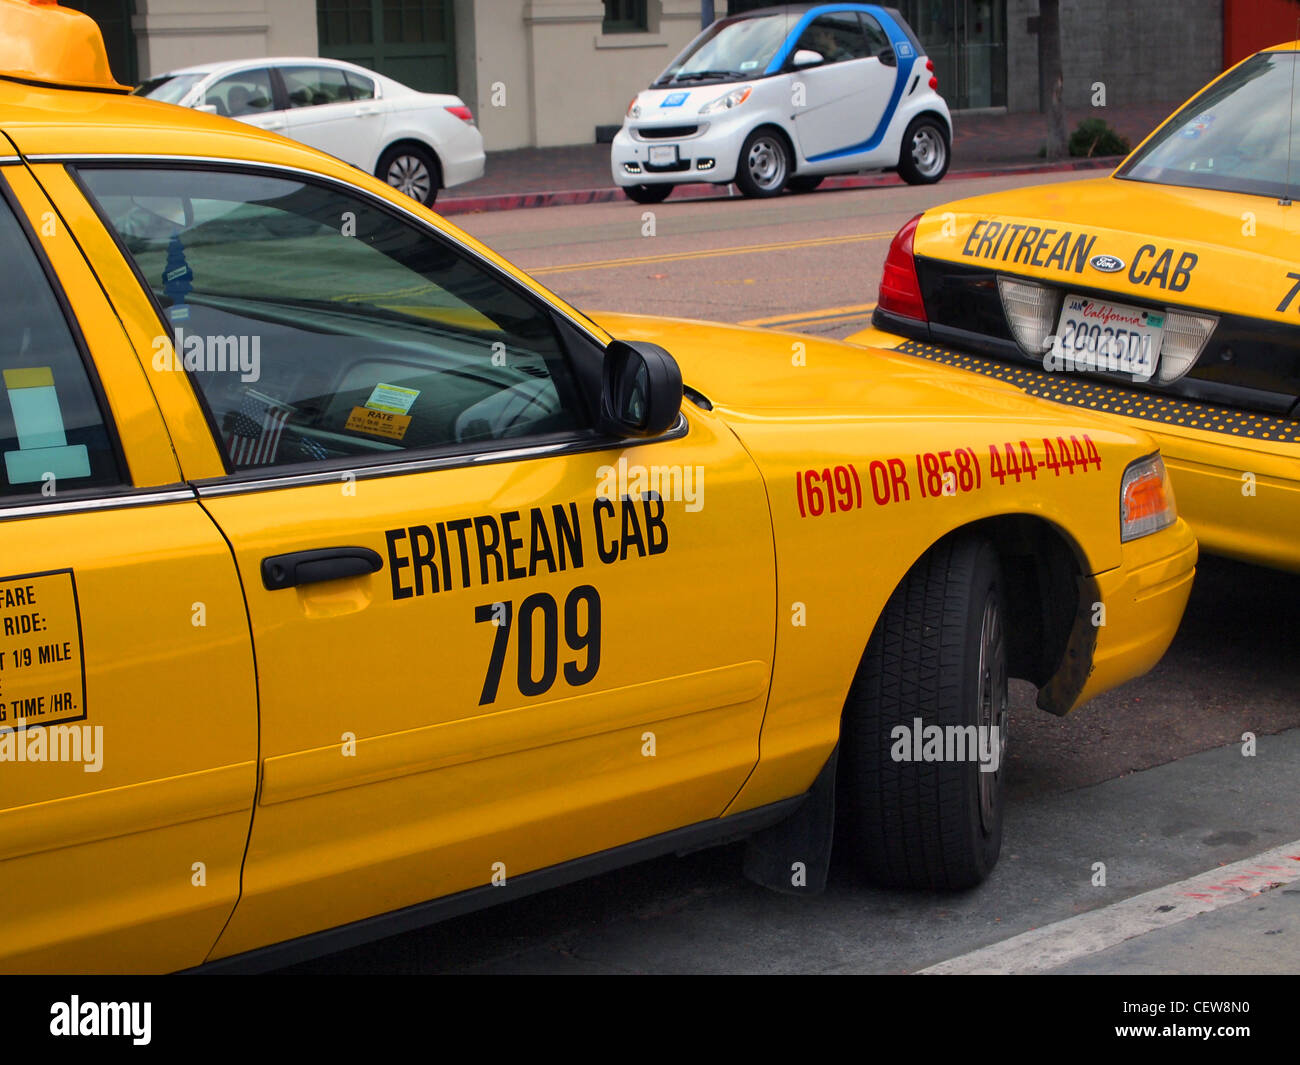 Cab San Diego >> Eritrean Cab San Diego California Usa Stock Photo